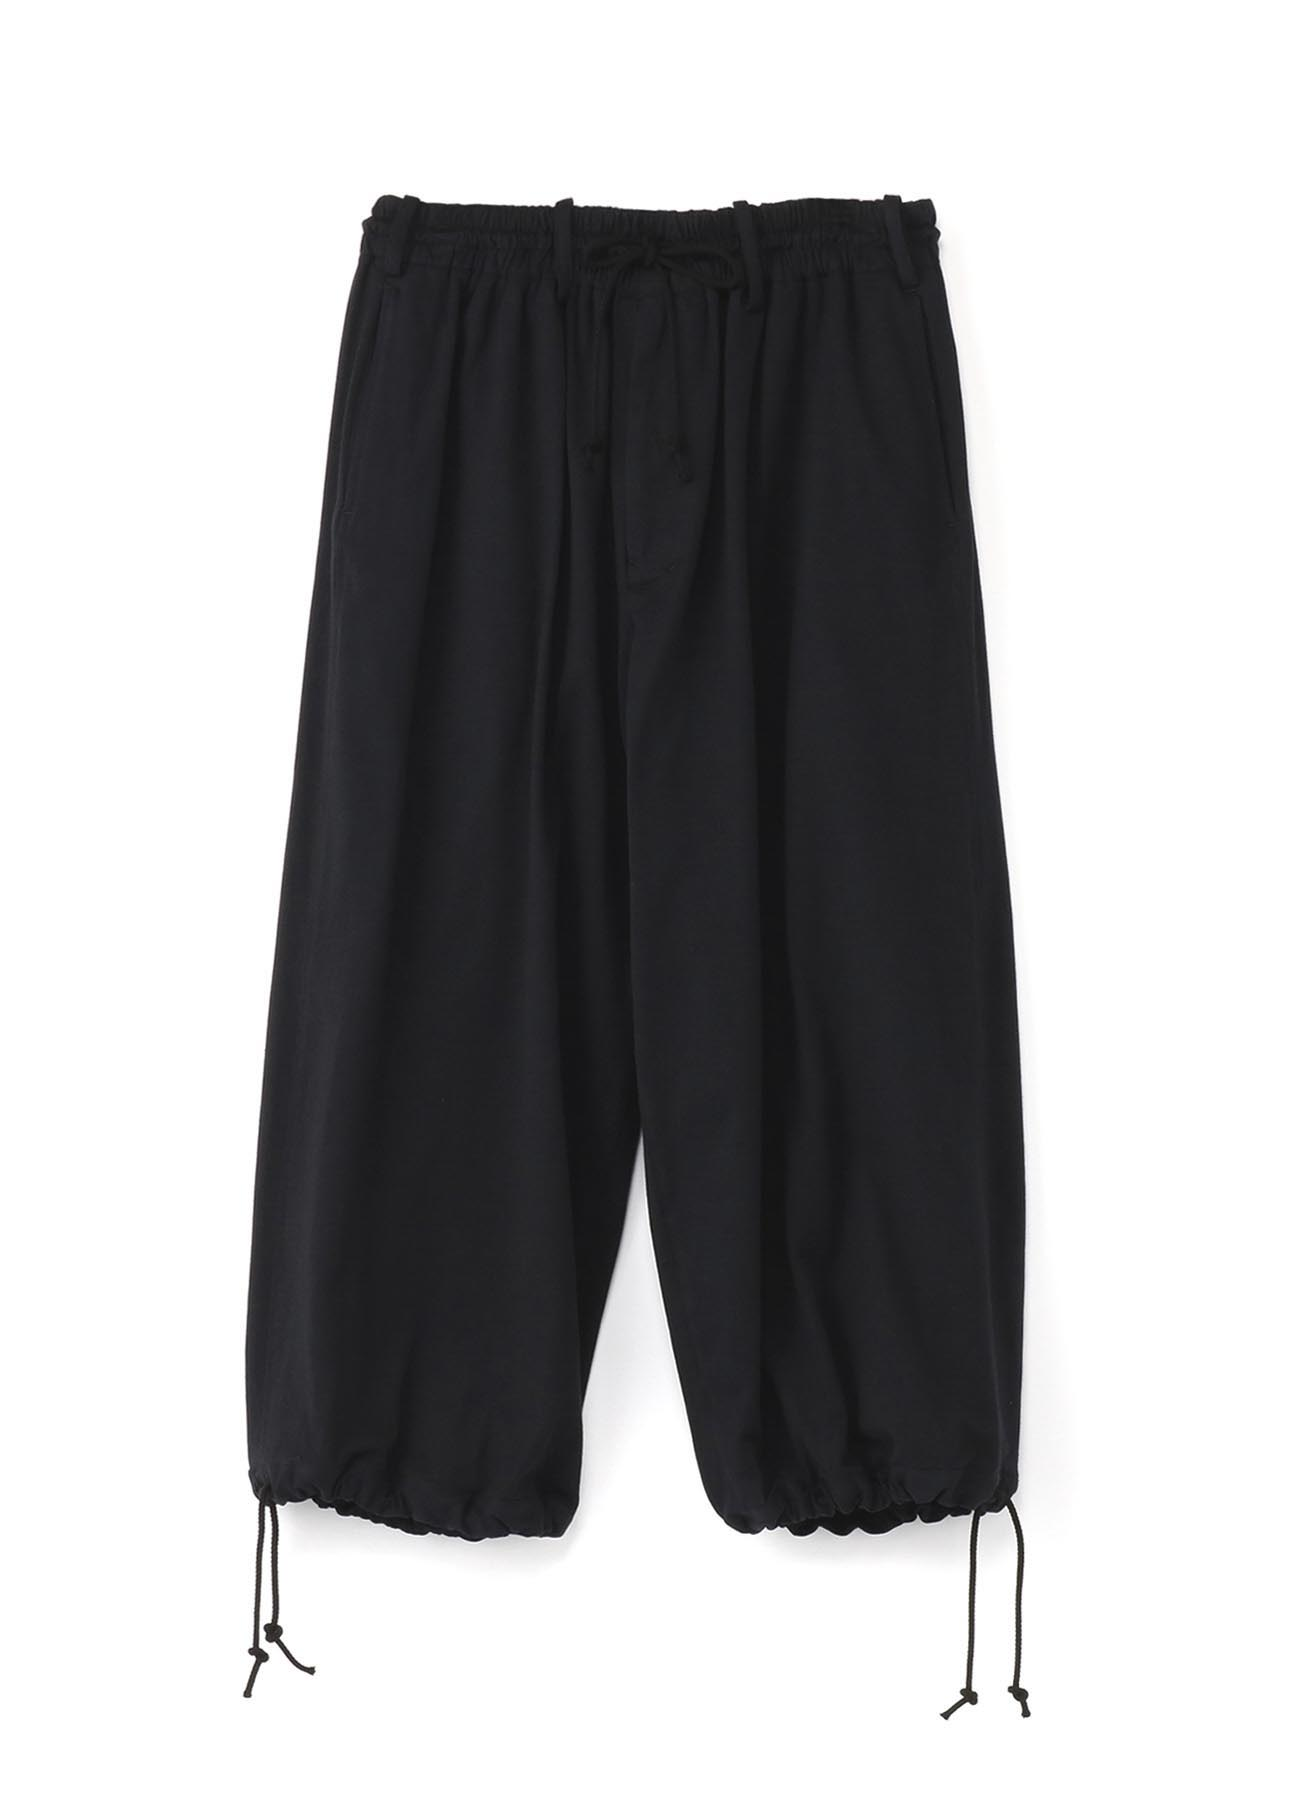 40/2Cotton Jersey Balloon Pants